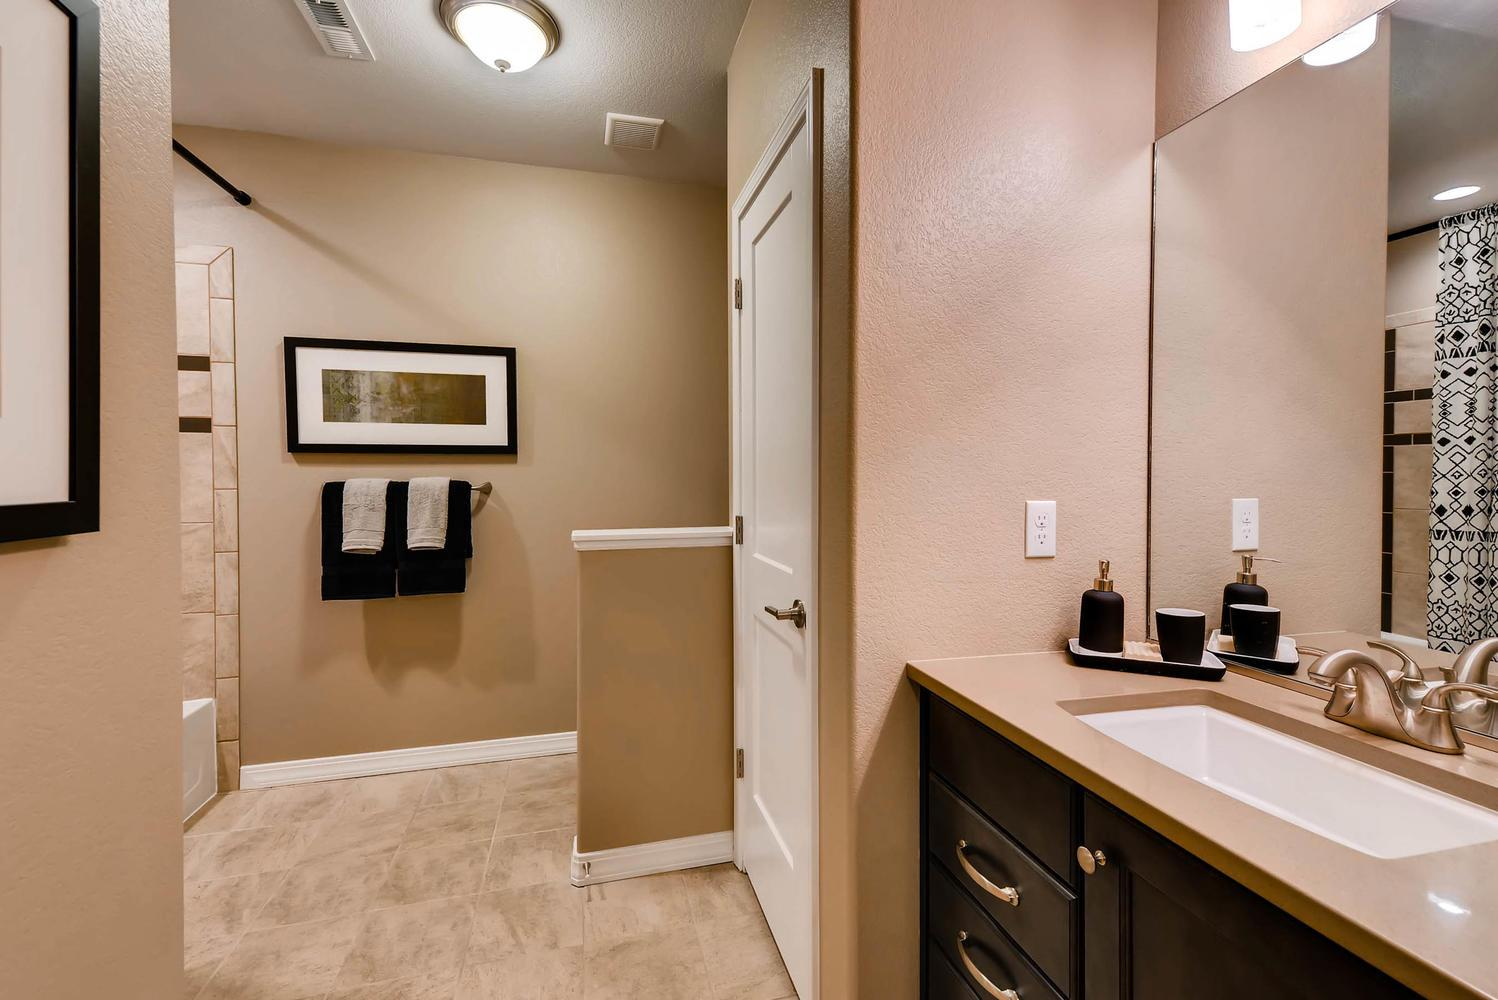 Bathroom featured in the Daybreak By Classic Homes in Colorado Springs, CO